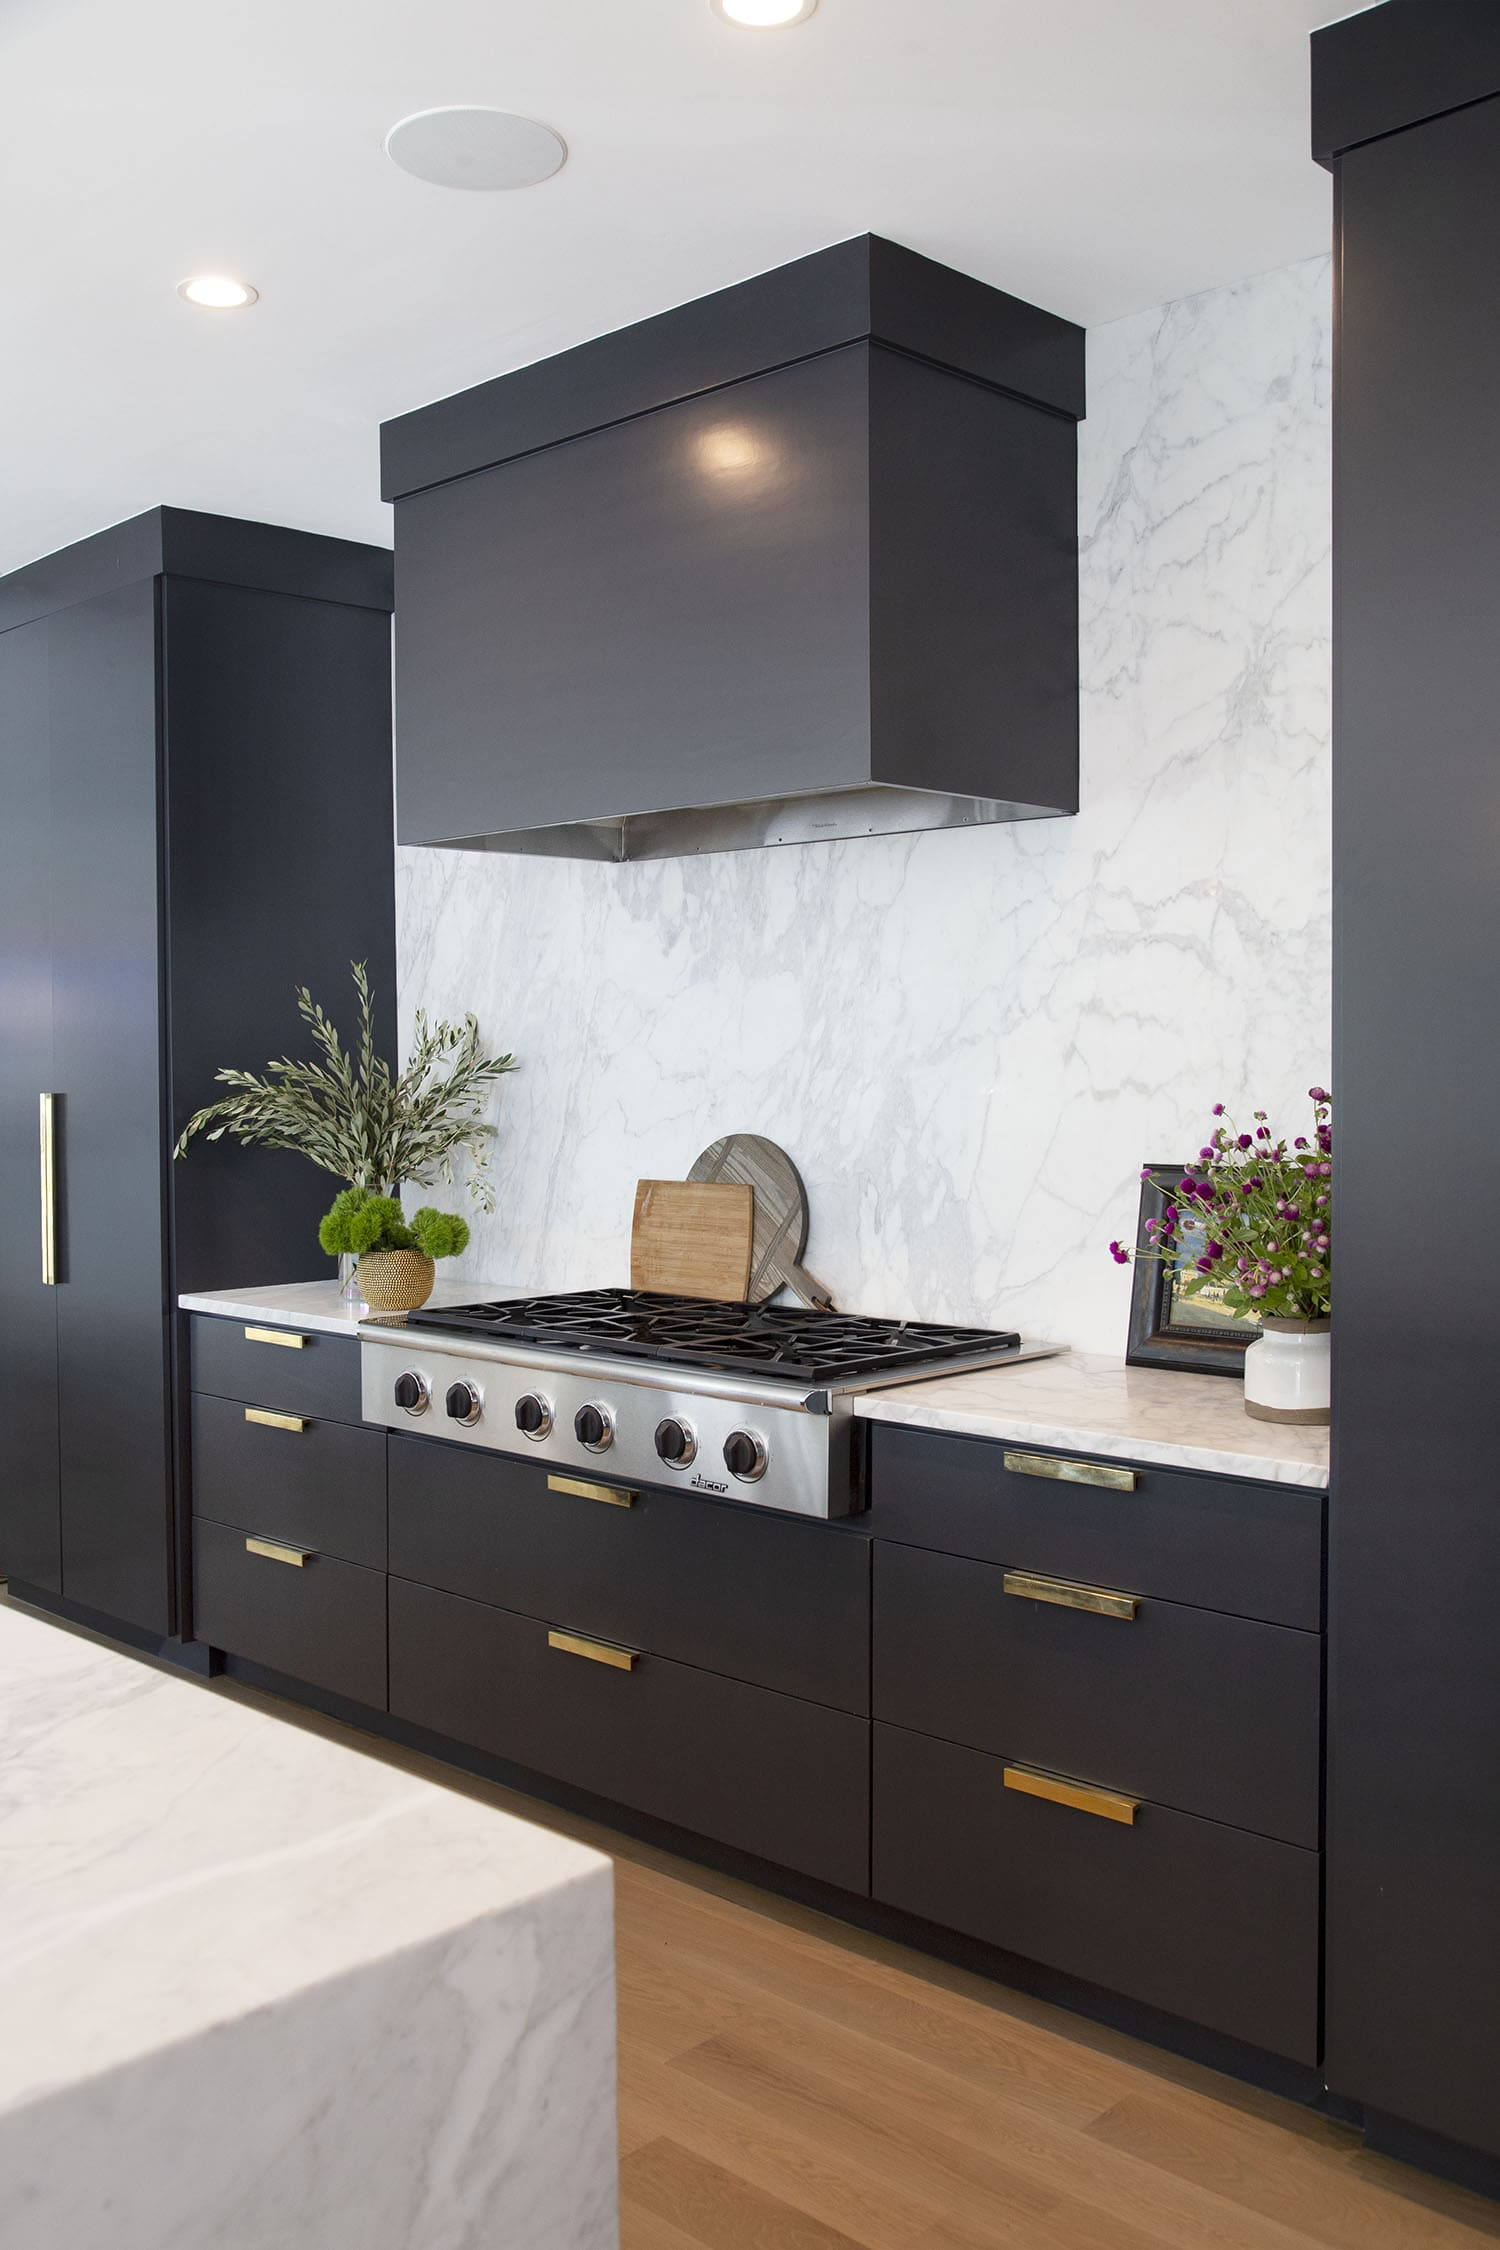 Black kitchen cabinets in Benjamin Moore BM 2124-10 Wrought Iron, Paper Moon Painting